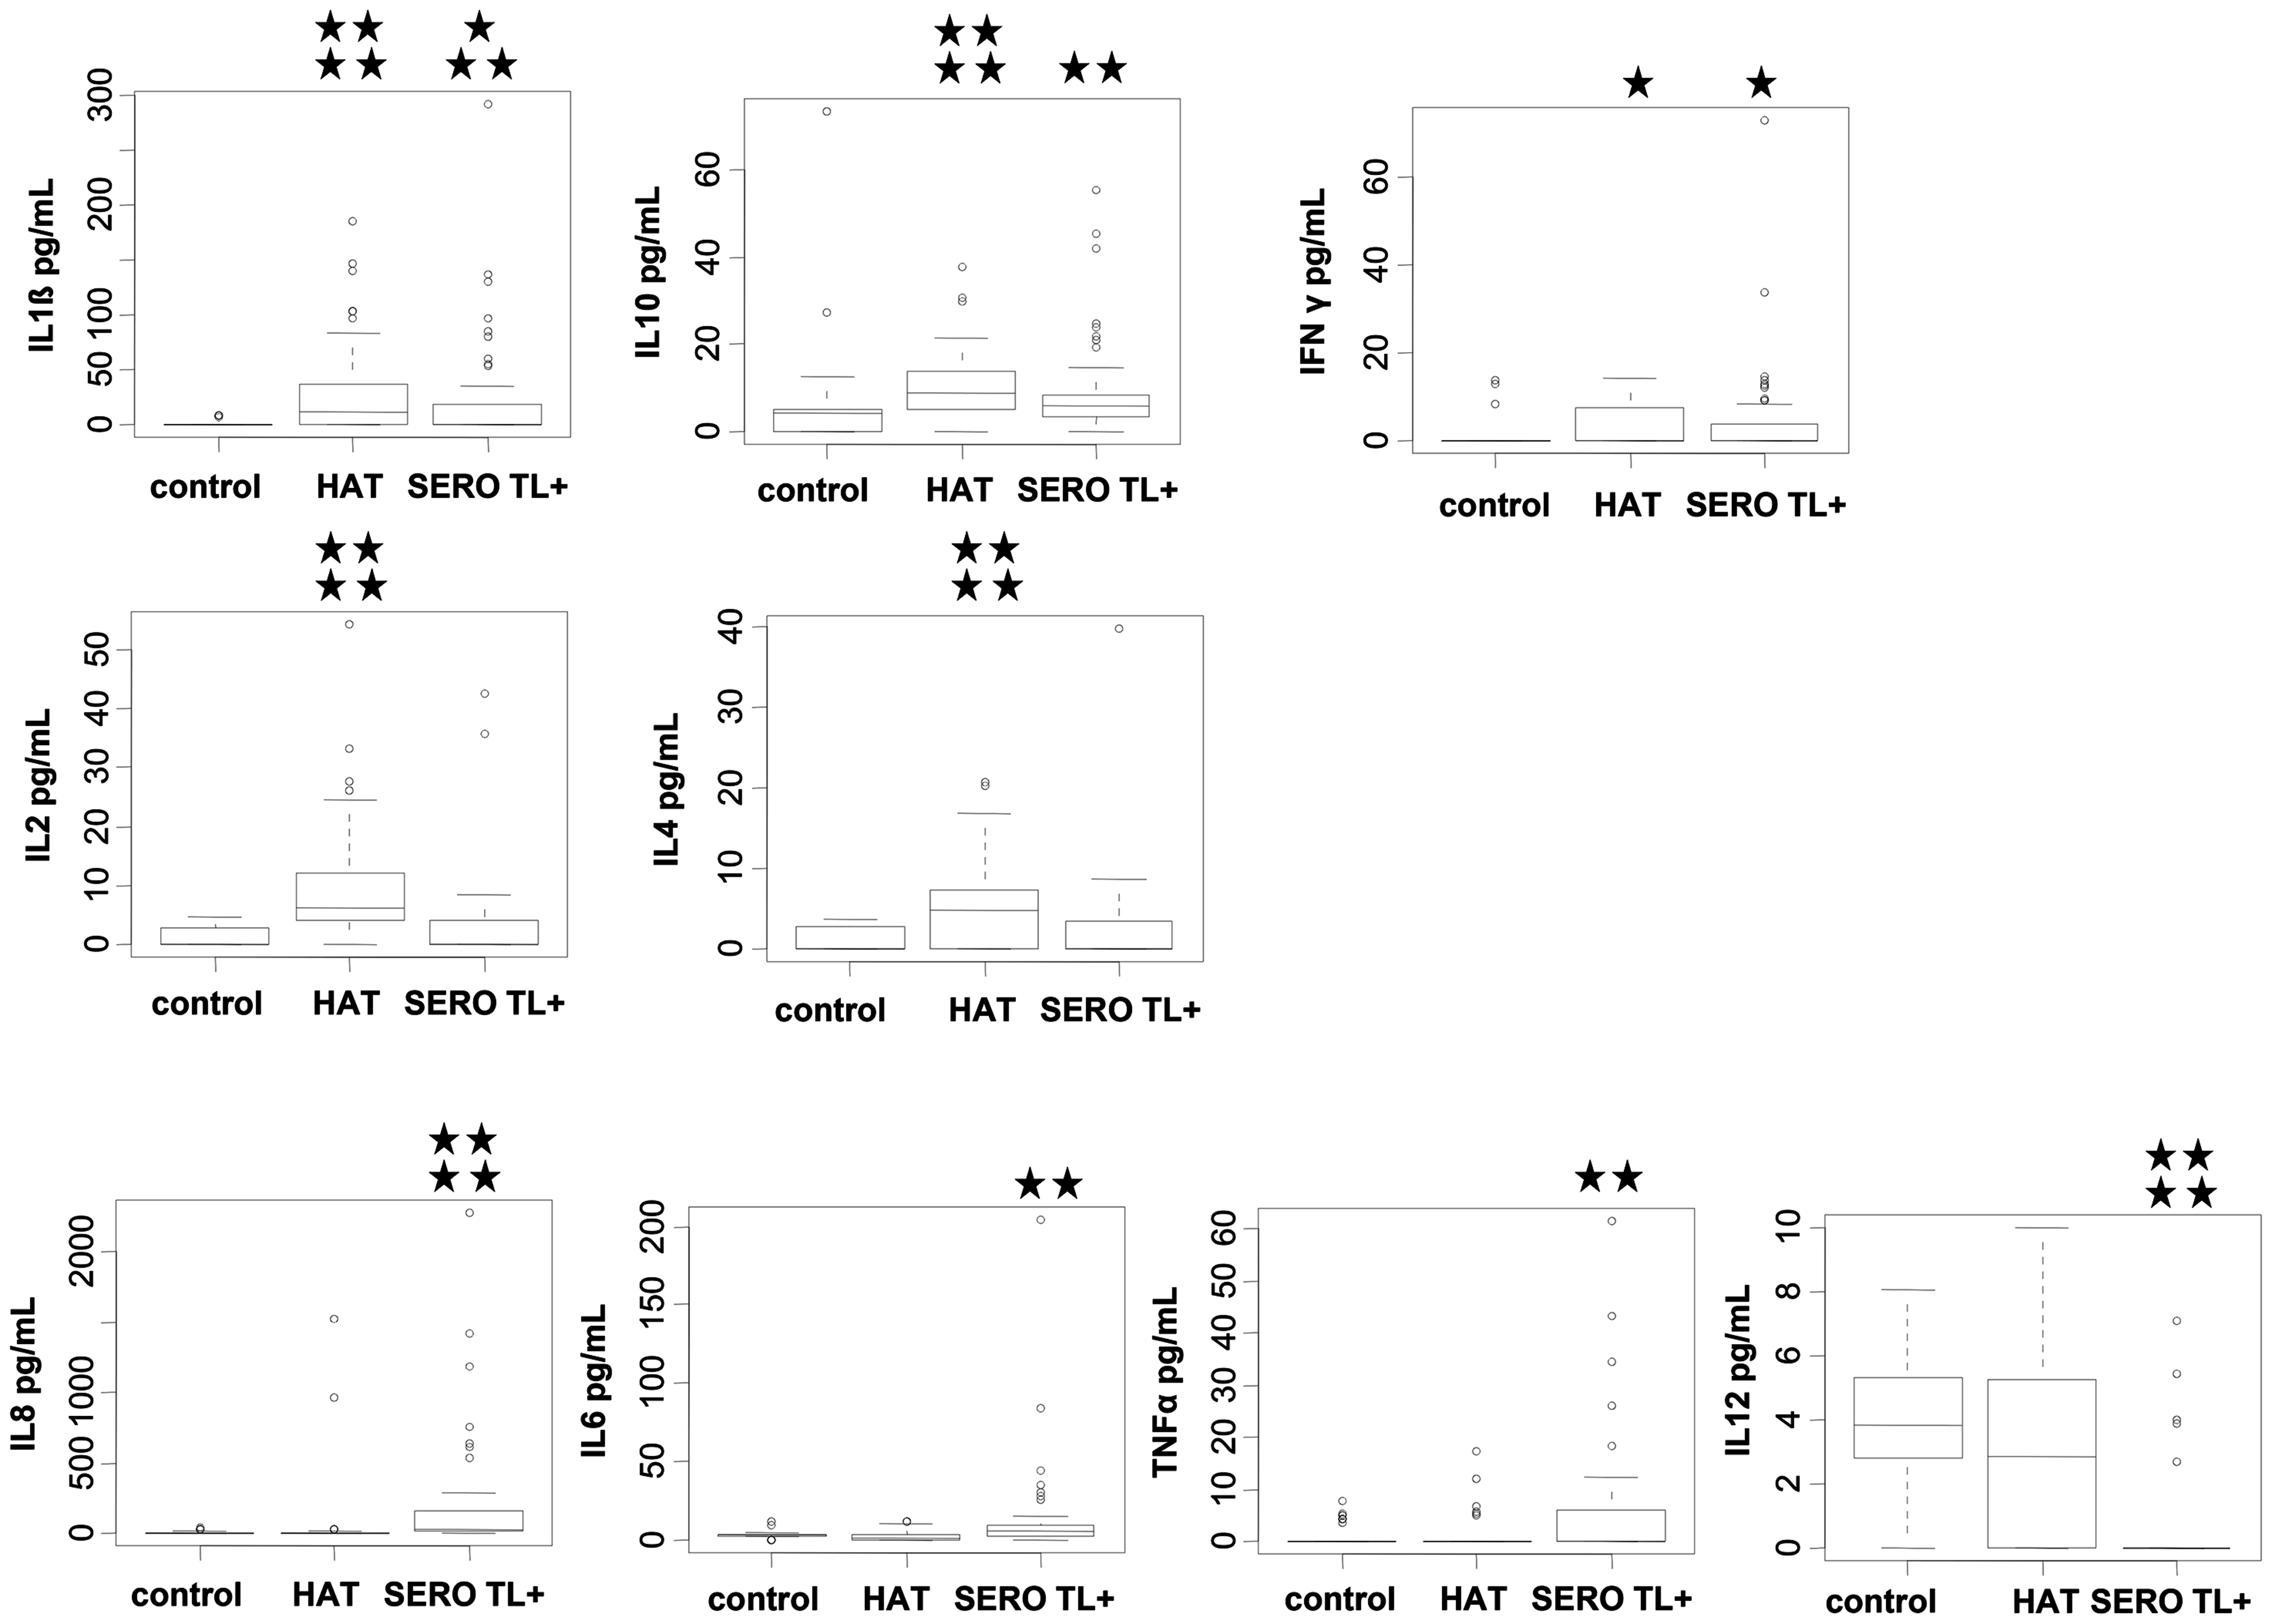 Plasmatic cytokine profiles in HAT patients, SERO TL+ subjects, and endemic controls.